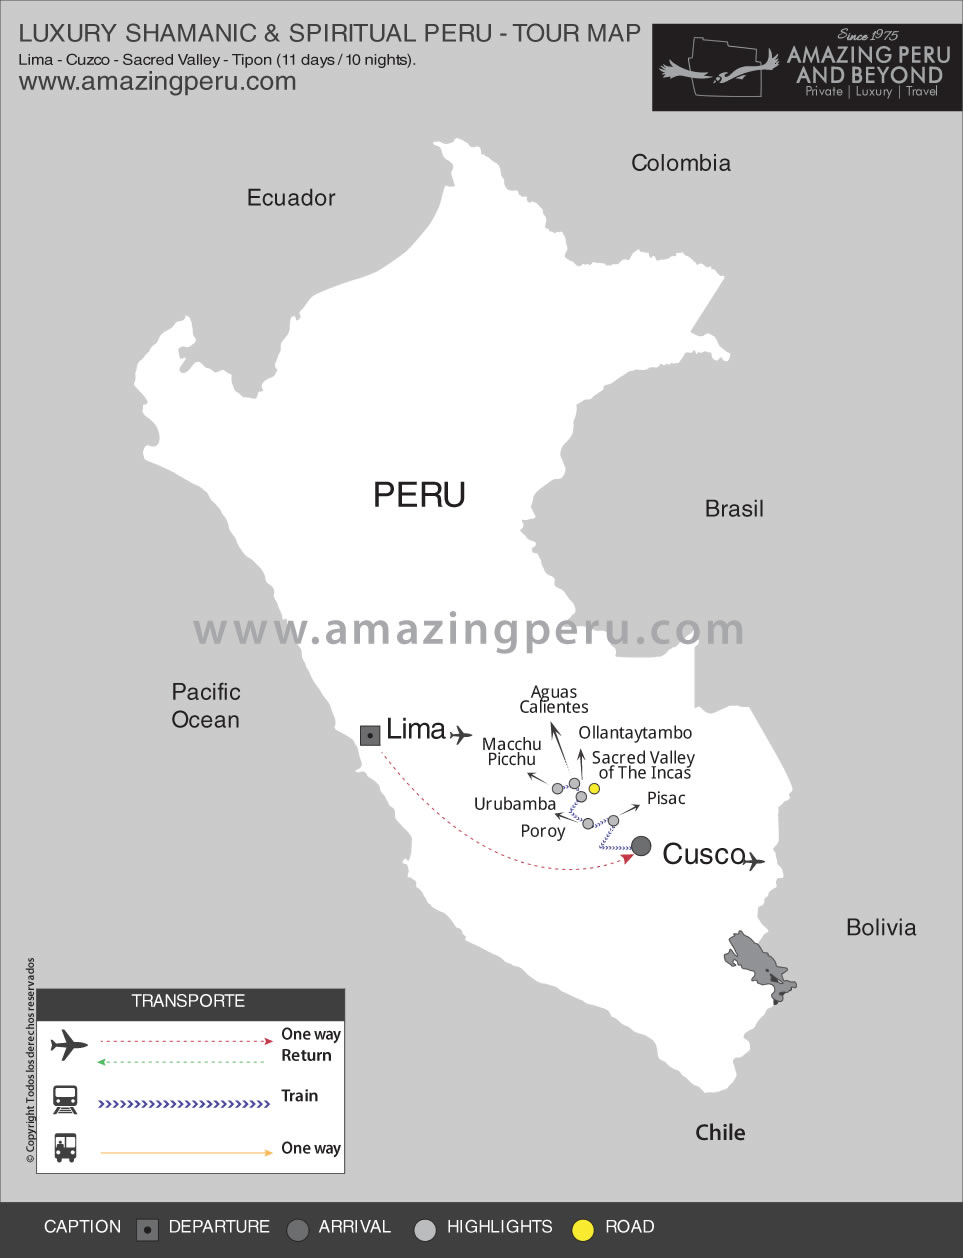 Luxury Shamanic & Spiritual Peru Tour - 11 days / 10 nights.